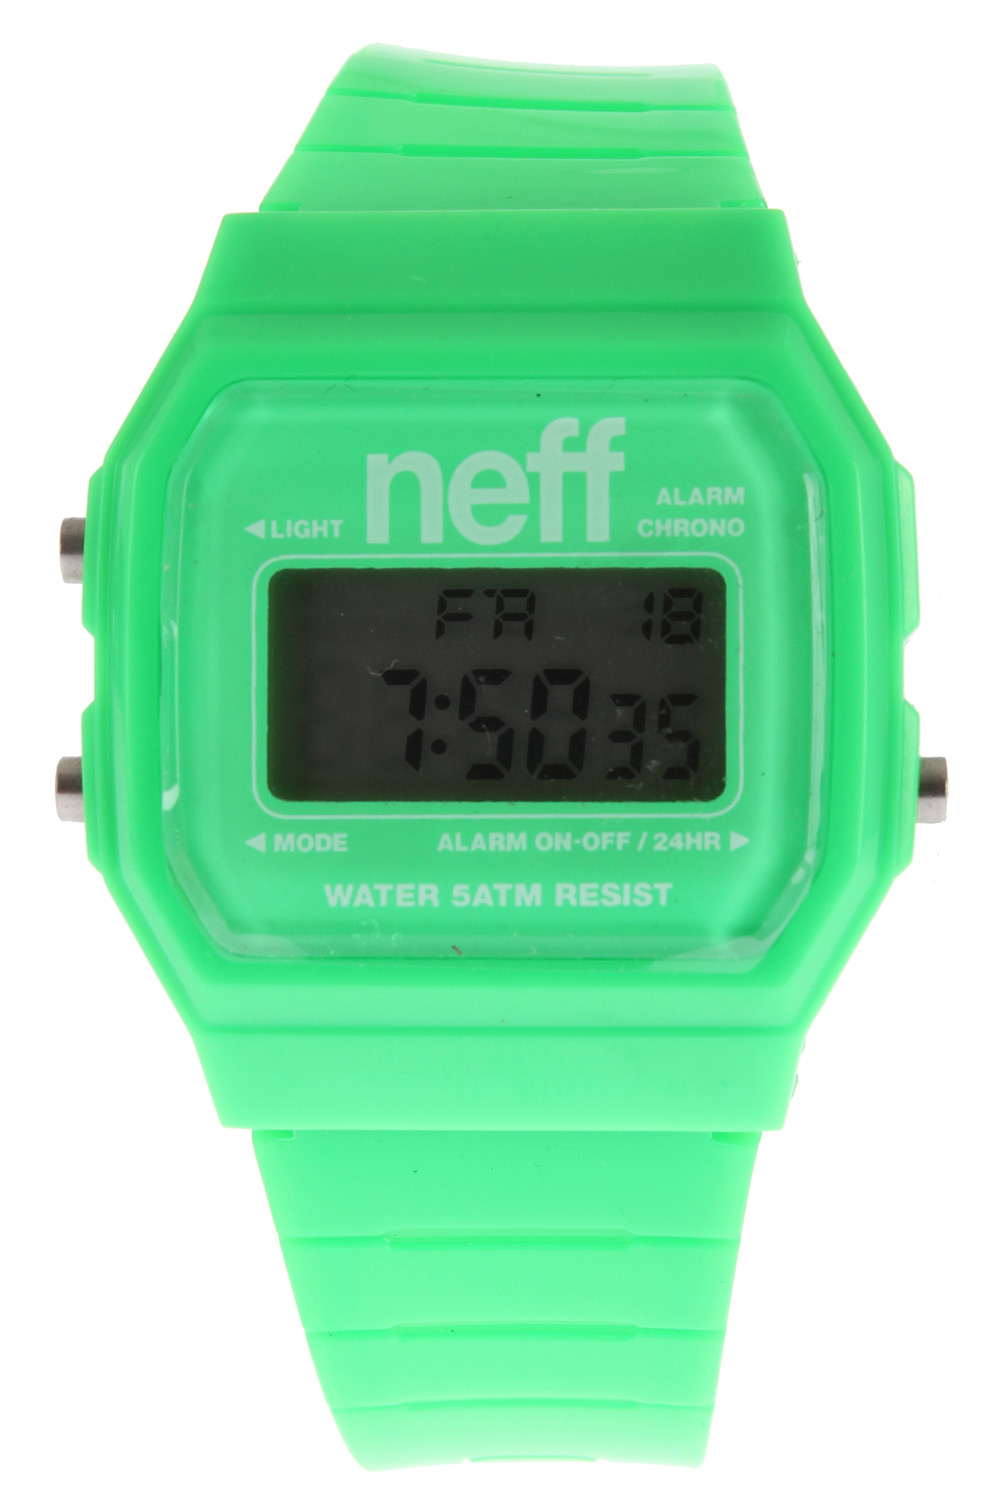 Skateboard Like a boss! High fives never looked so good!Key Features of the Neff Flava Watch:  ABS case   PU strap.  Alarm  Military Time  Backlight  Date  Water resistant up to five meters  Weight: 1 oz - $11.95